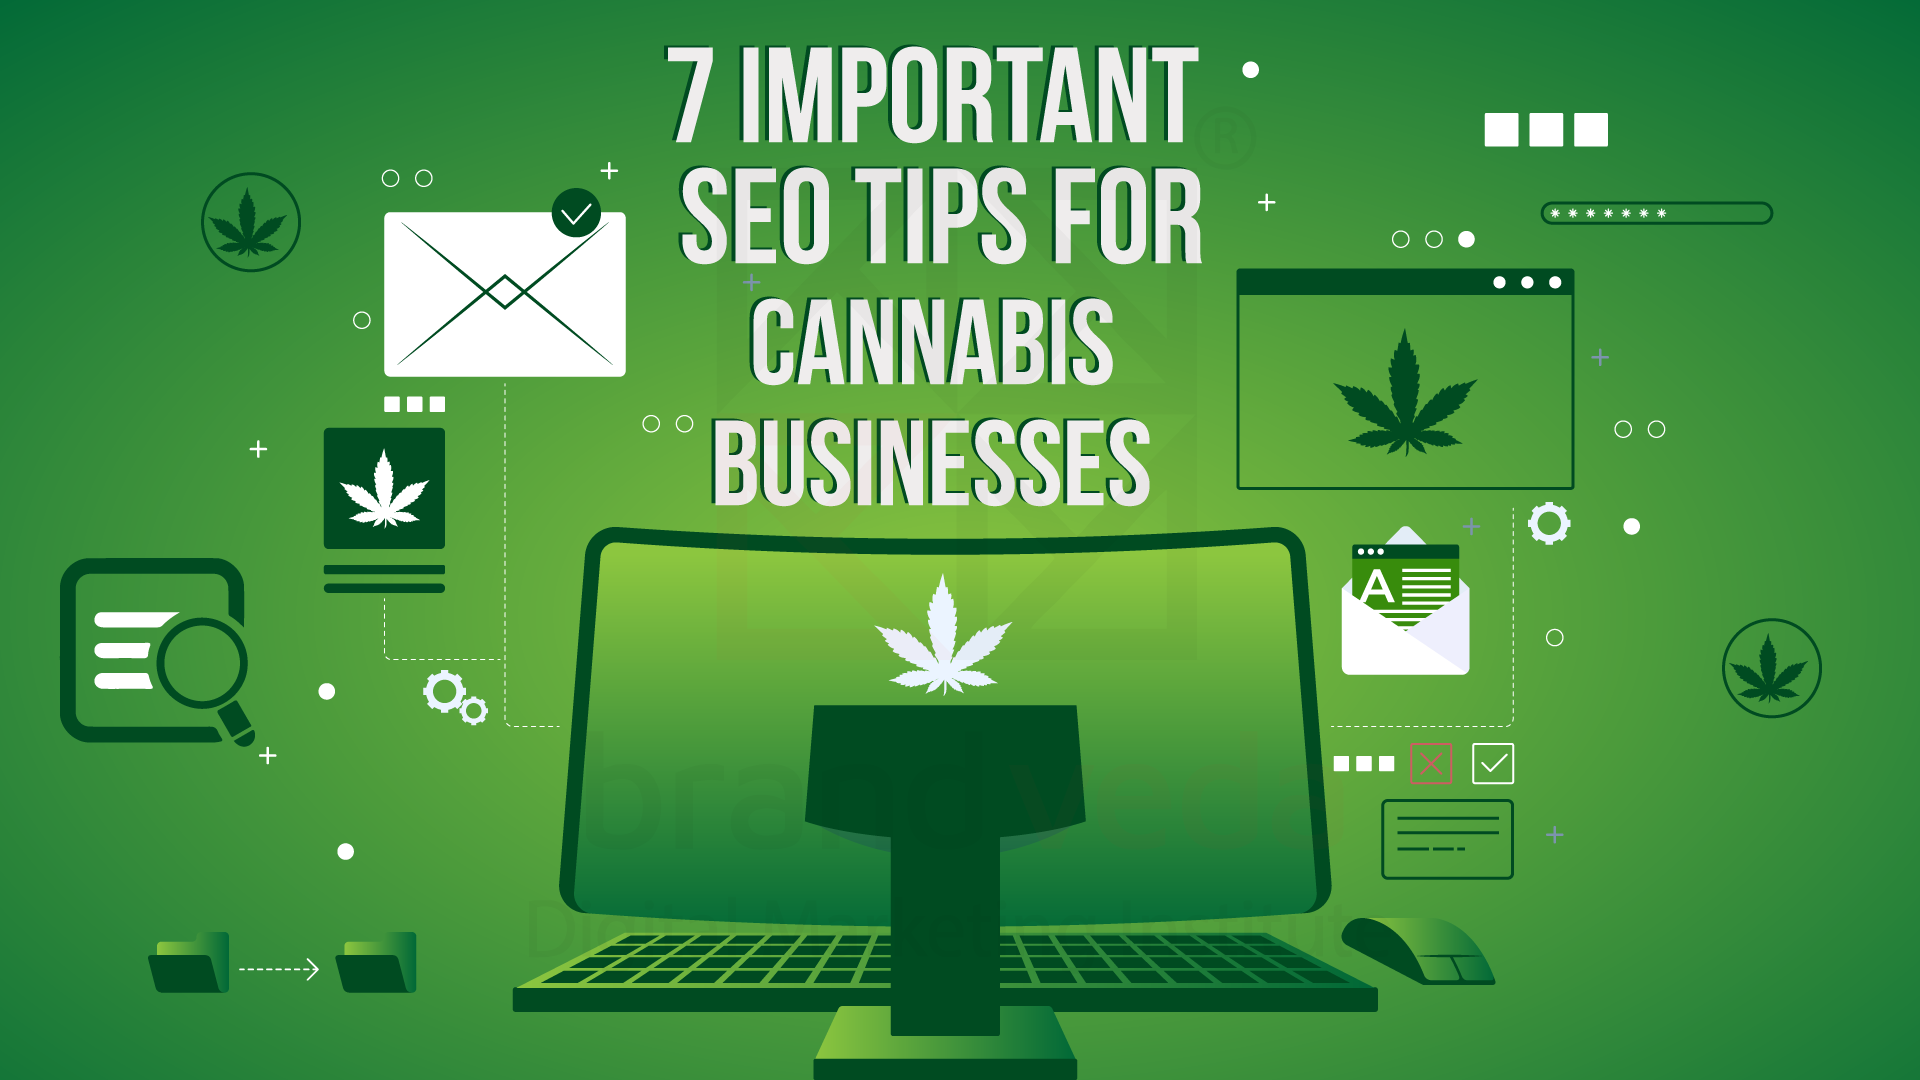 7 Important SEO Tips For Cannabis Businesses